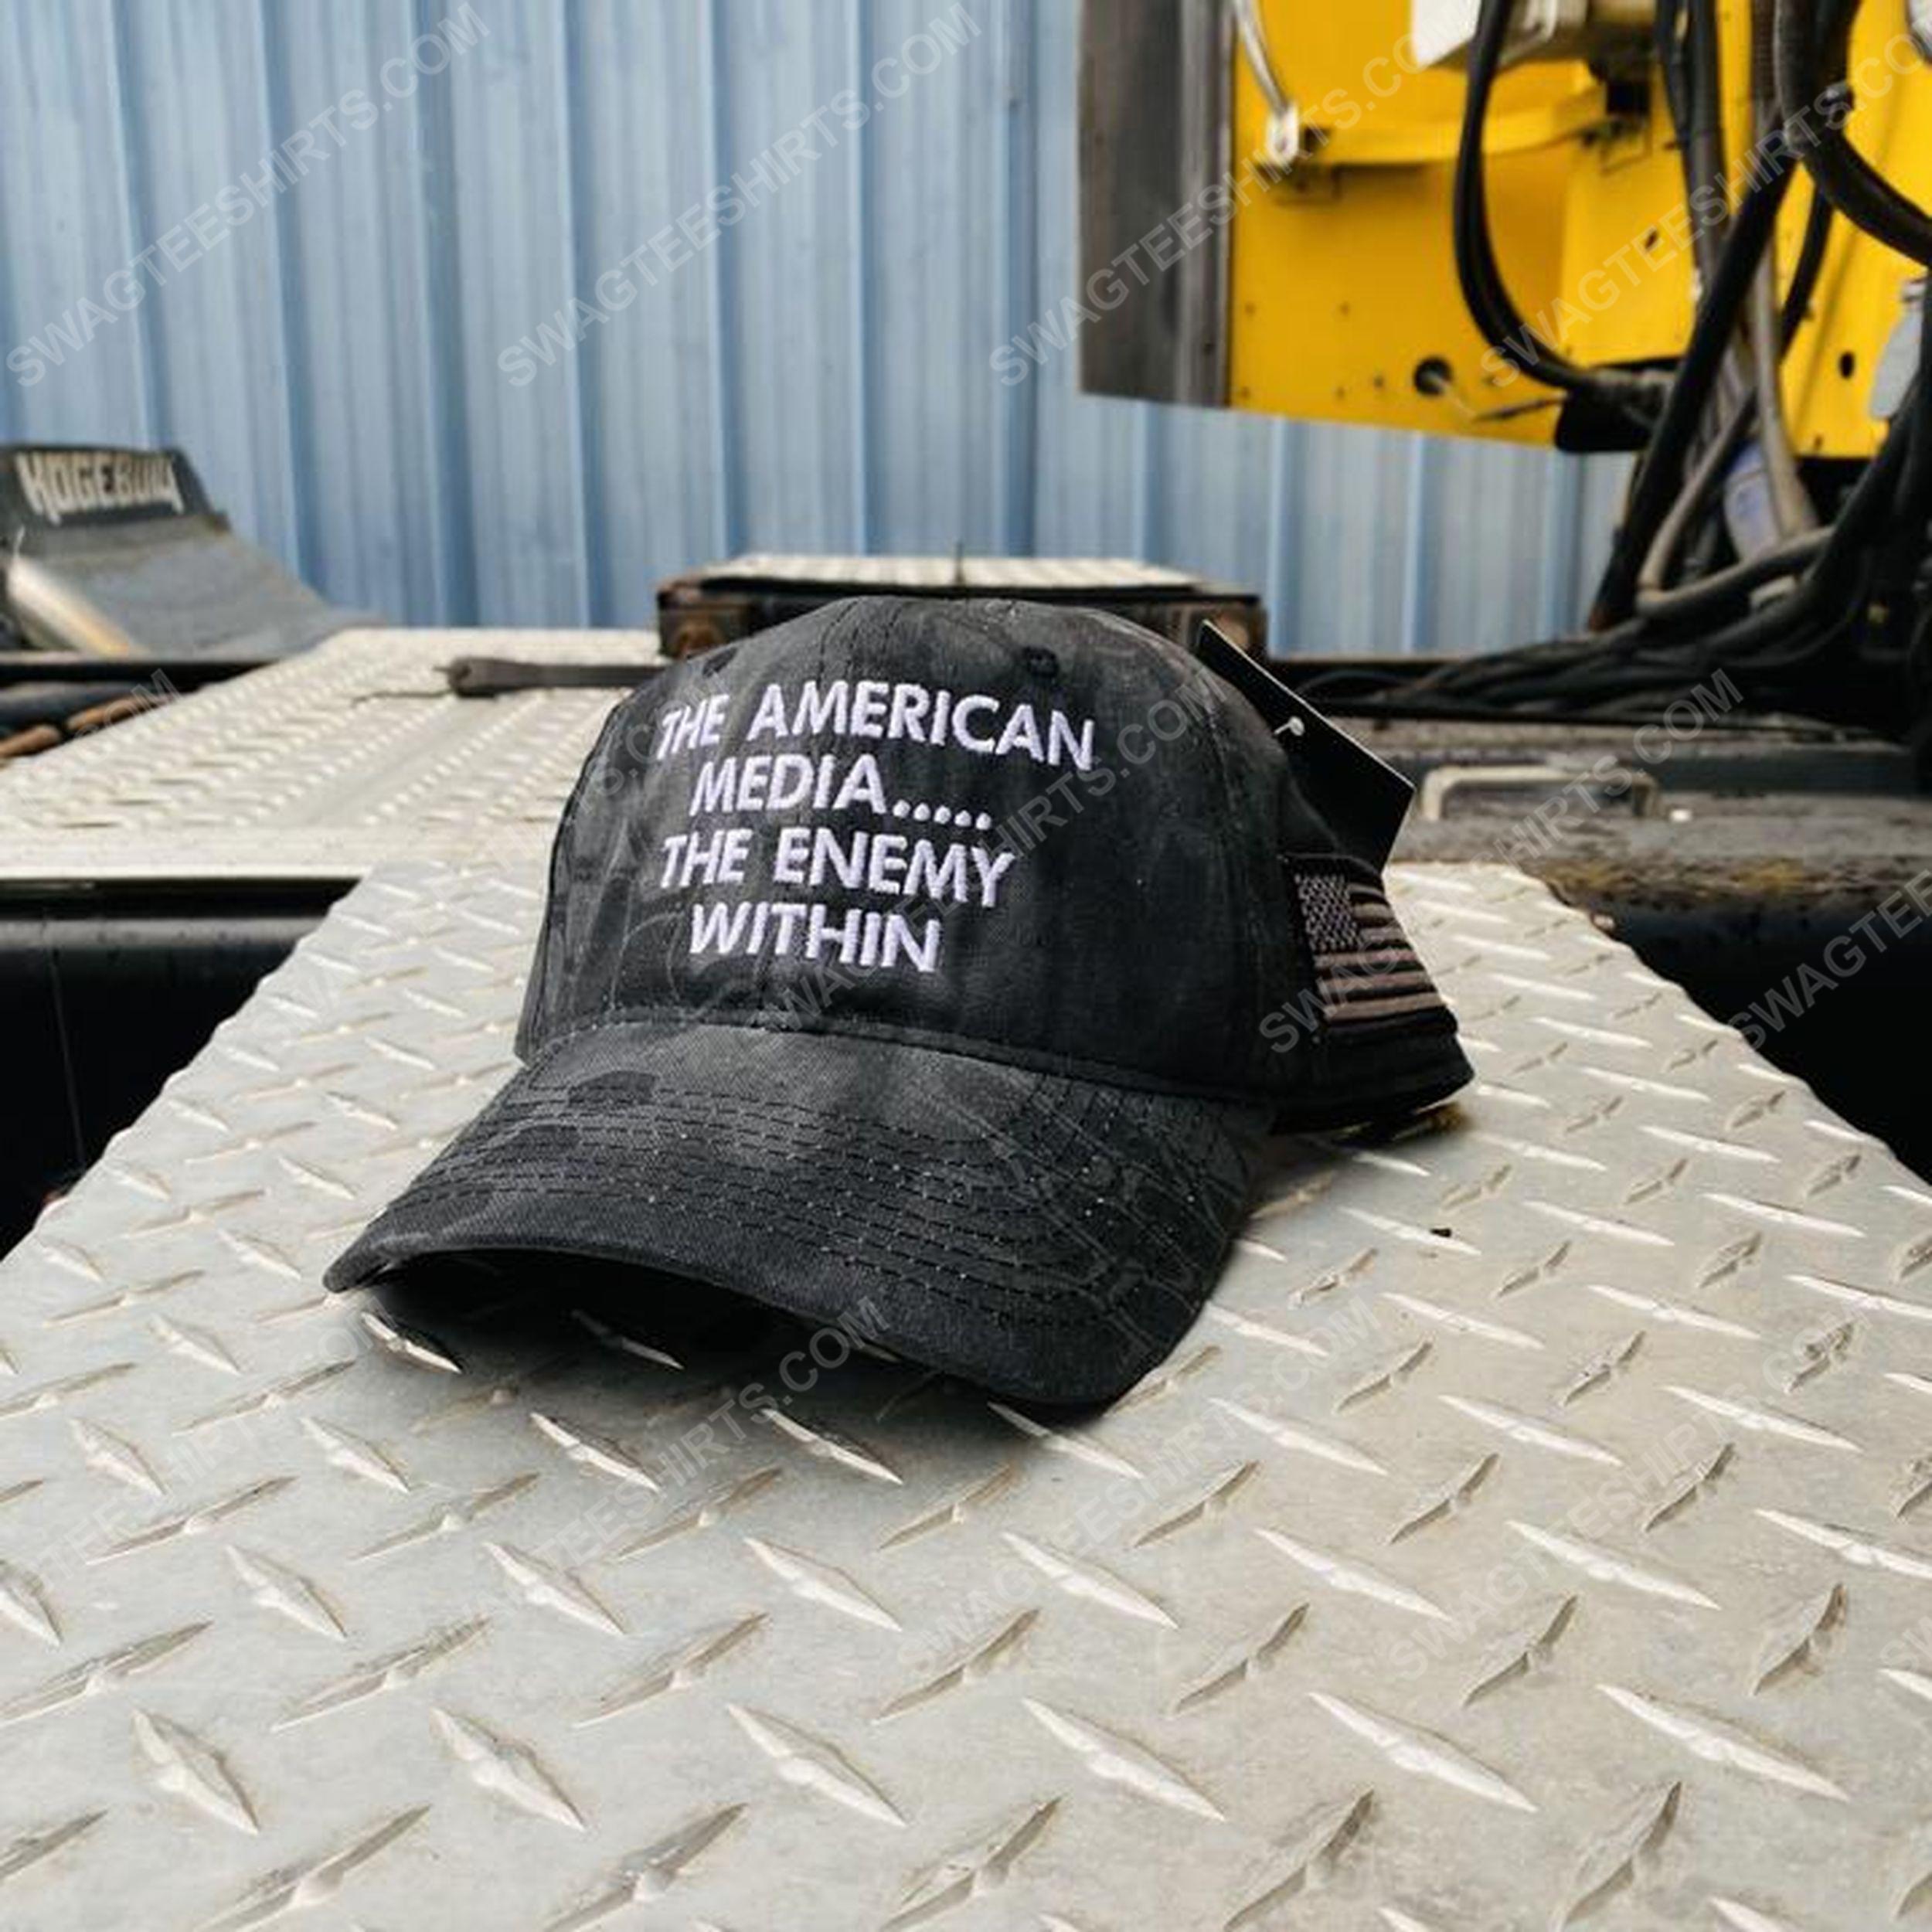 The american media the enemy within full print classic hat 1 - Copy (2)